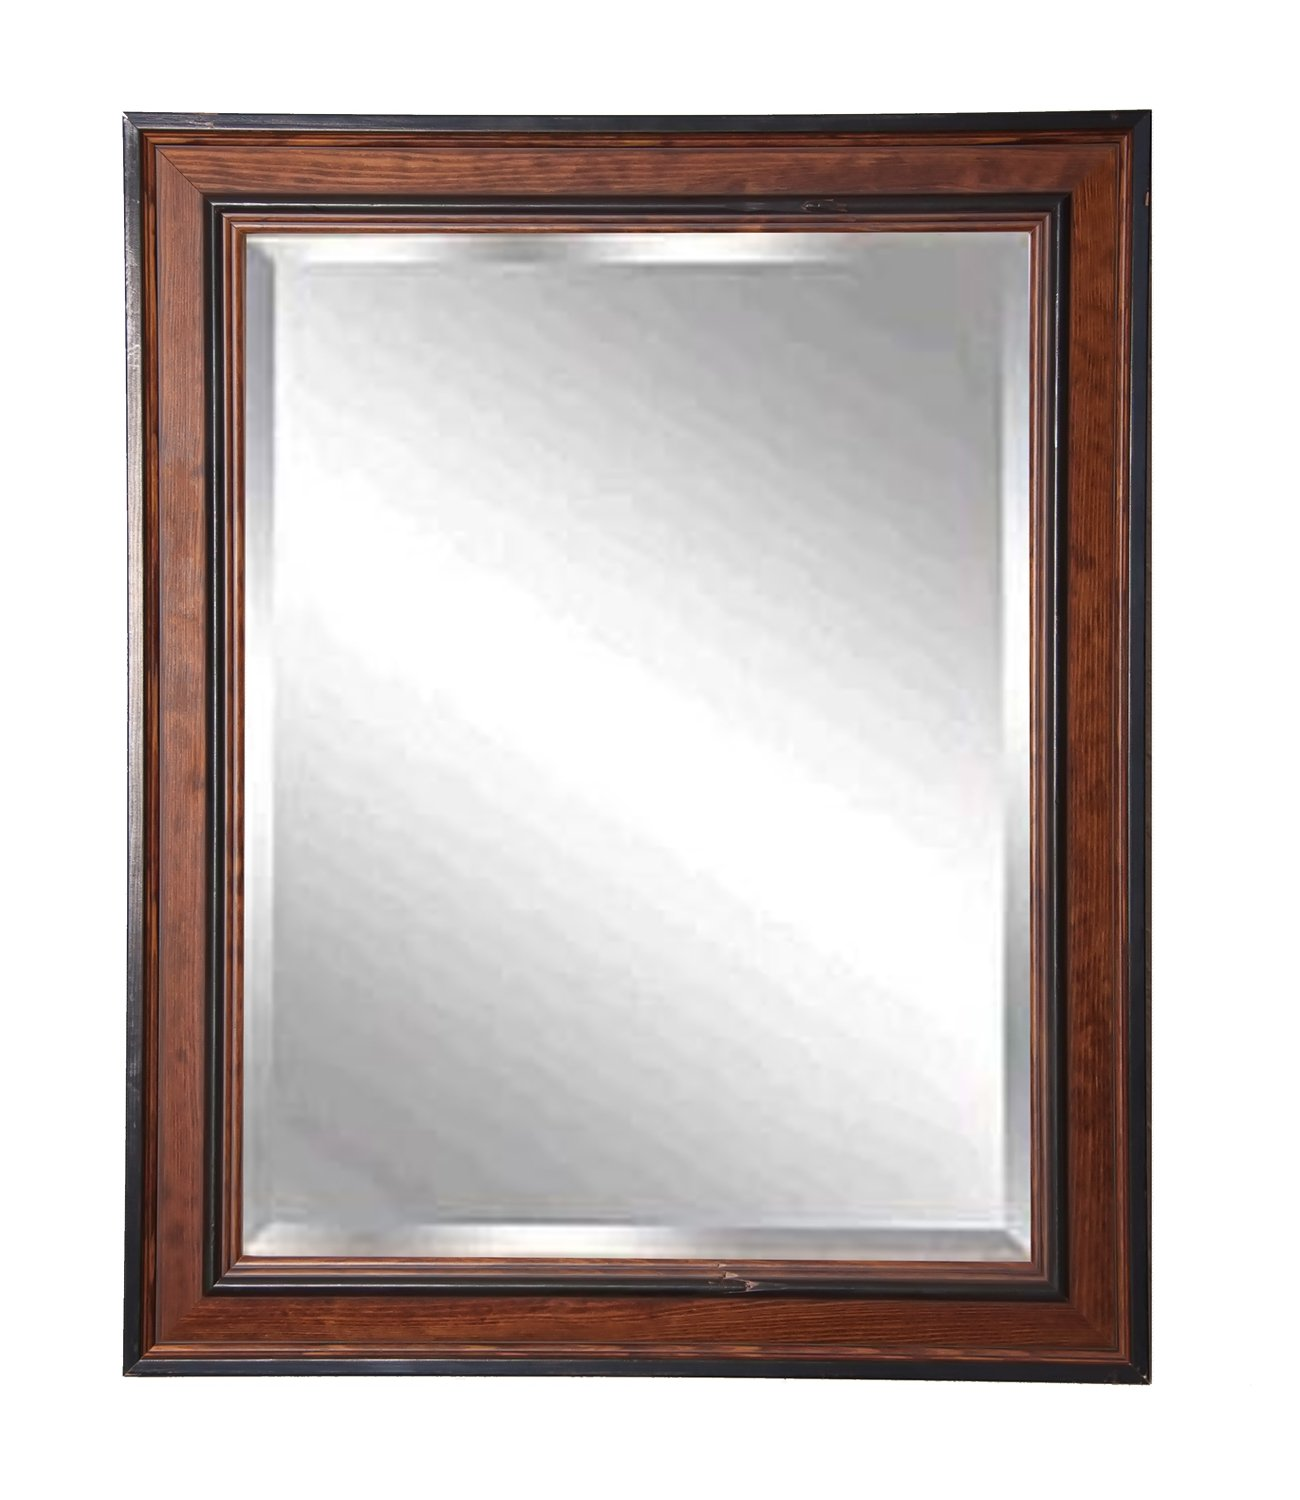 American Made Rayne Country Pine Beveled Wall Mirror, 30.5 x 36.5